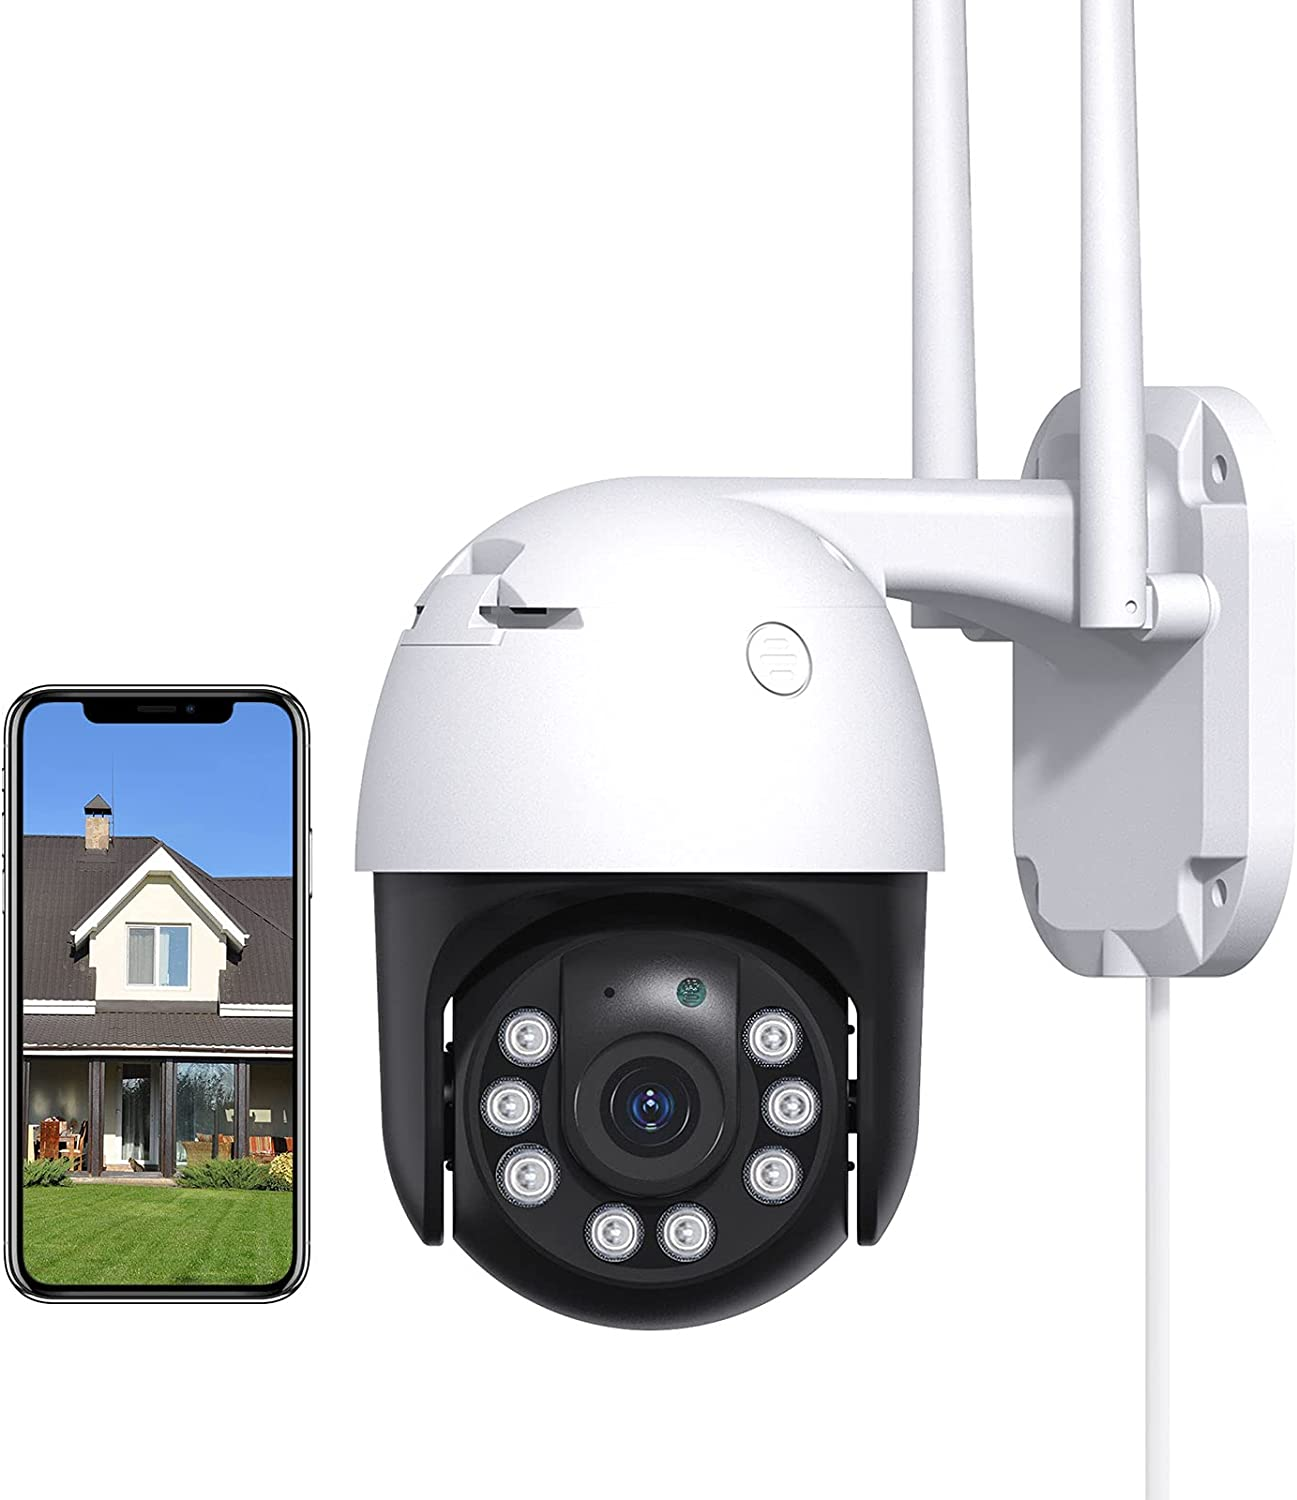 Security Camera Outdoor with 1080P Color Night Vision, 360° View, Motion Tracking, Instant Alerts, IP65 Weatherproof, Works with Alexa,Remote Monitoring, 2.4GHz WiFi Connection for Home Surveillance